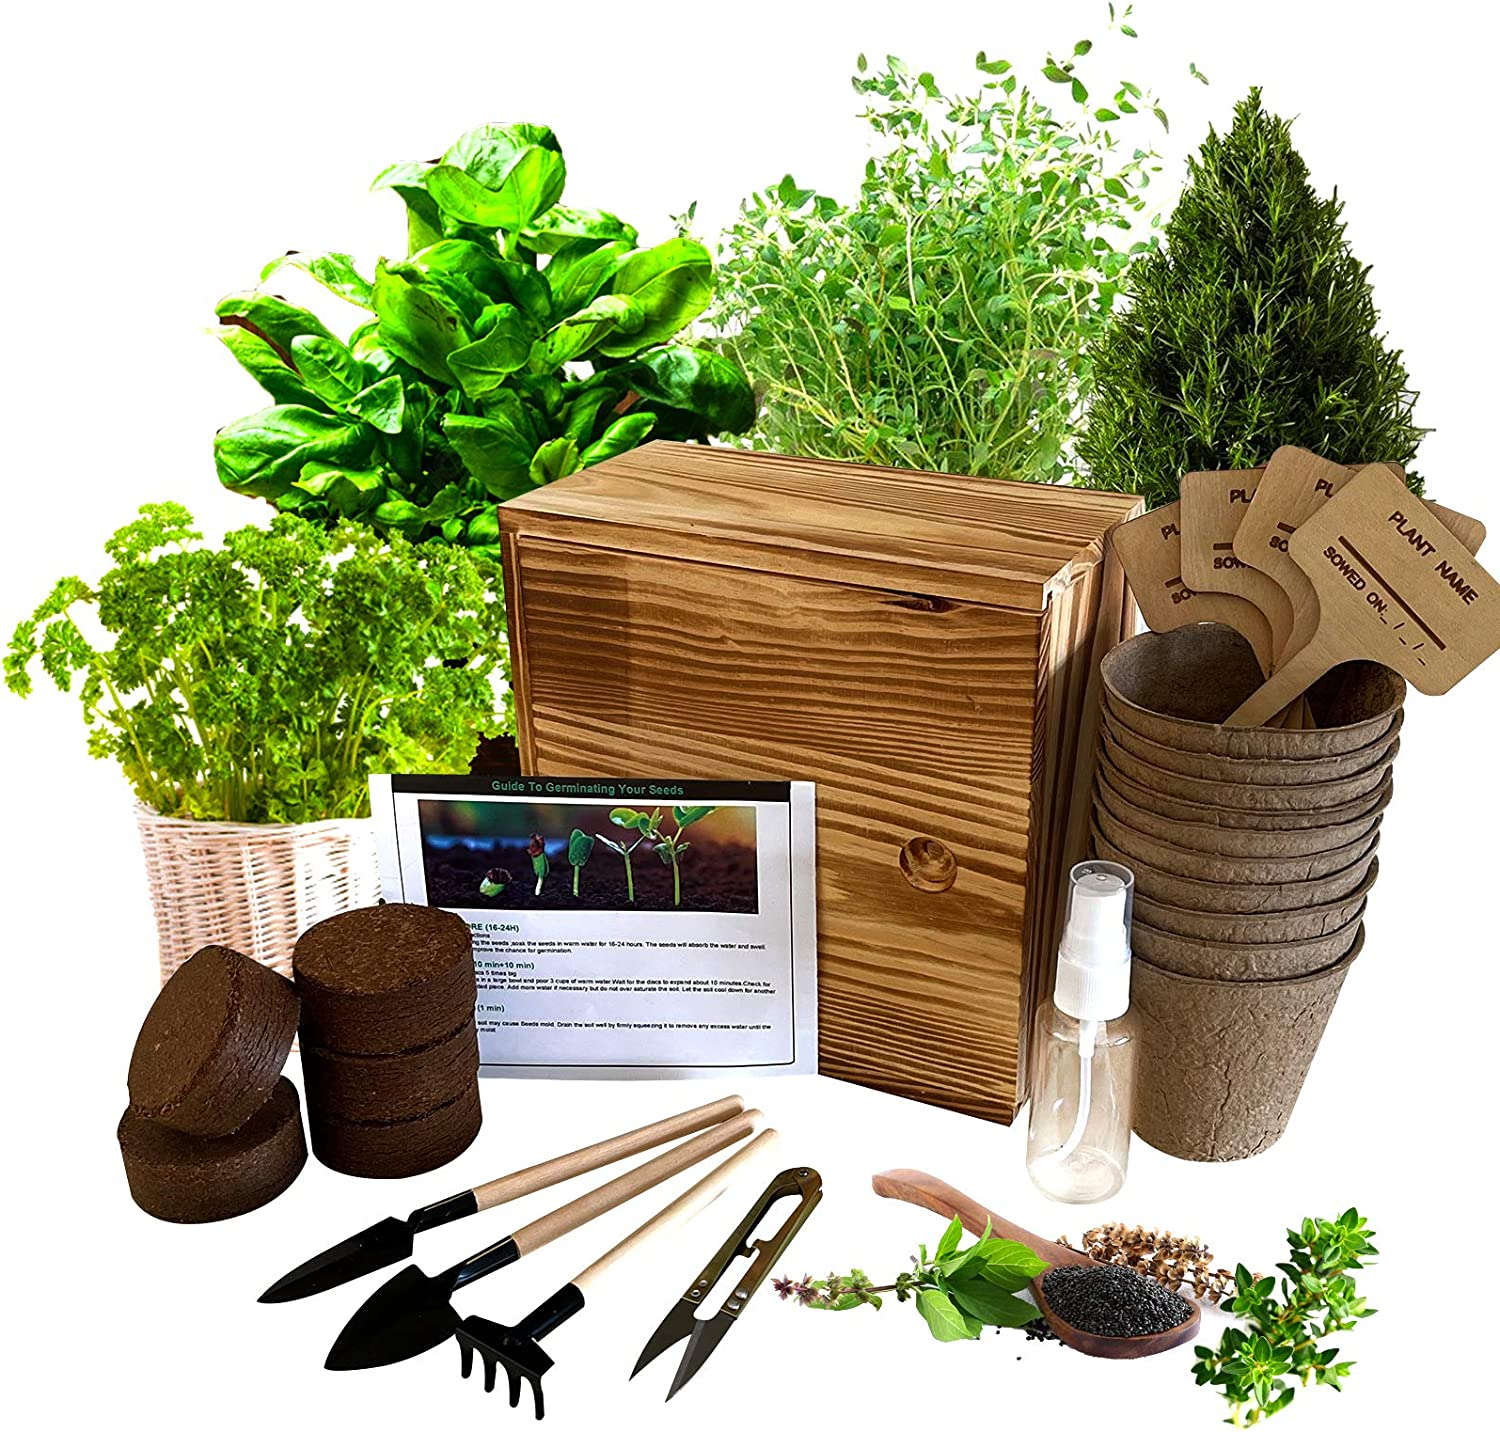 Hand-Mart 4 Herb Seeds Complete with Wood Planter Herb Garden, Basil Parsley Rosemary Thyme, Including Soil, Pots, 3 Garden-Tool, Pruner, Sprayer, Plant Labels. DIY Craft Gift for Kids Adults.